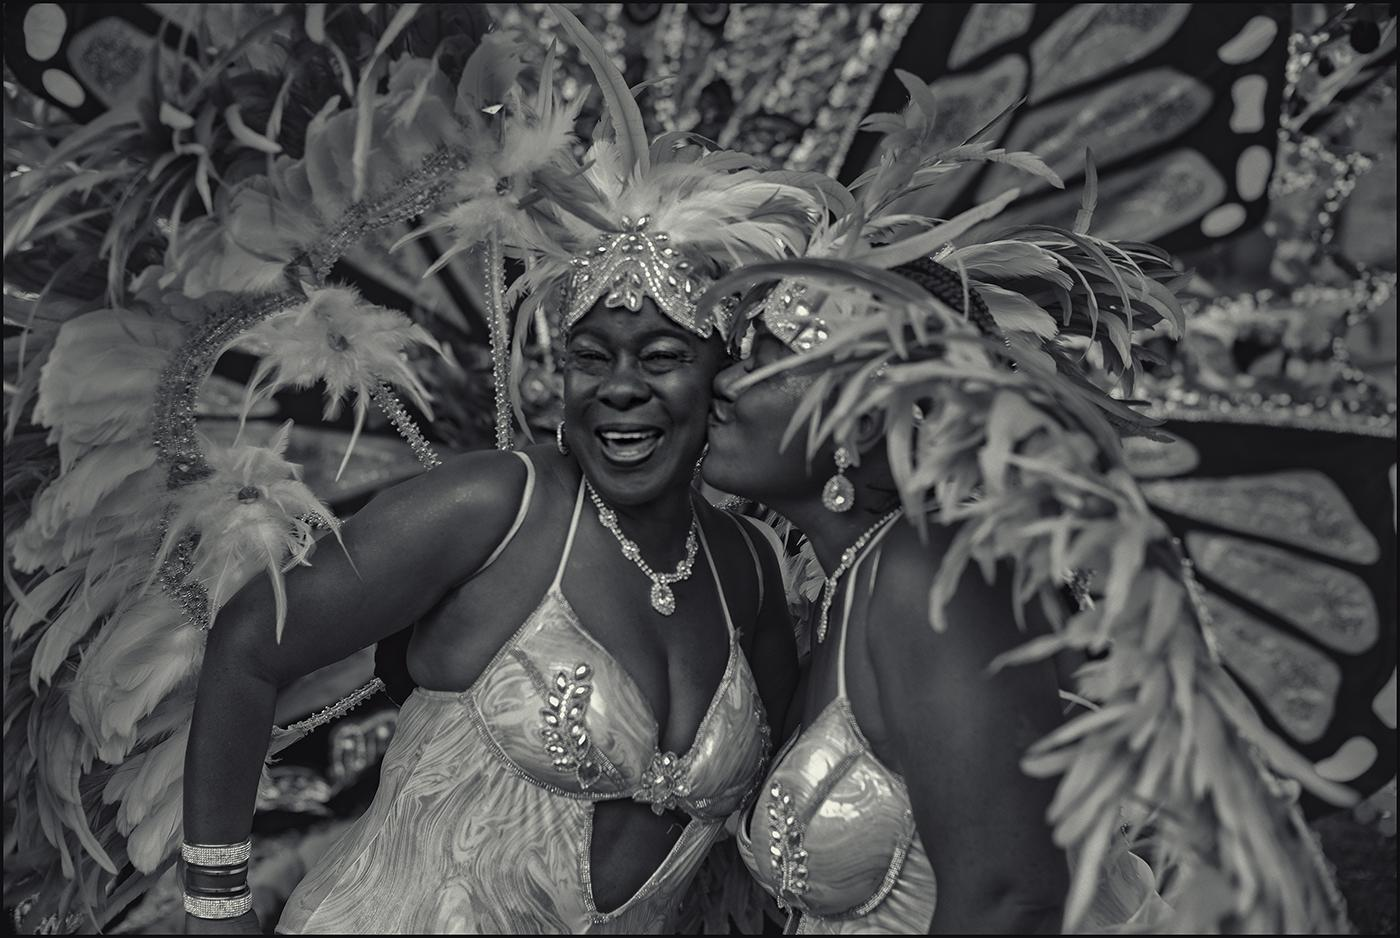 """Marvelous Marva (left) is kissed by fellow dancer Kim prior to start of West Indian American Day celebrations, Brooklyn, NYC.September 2019."